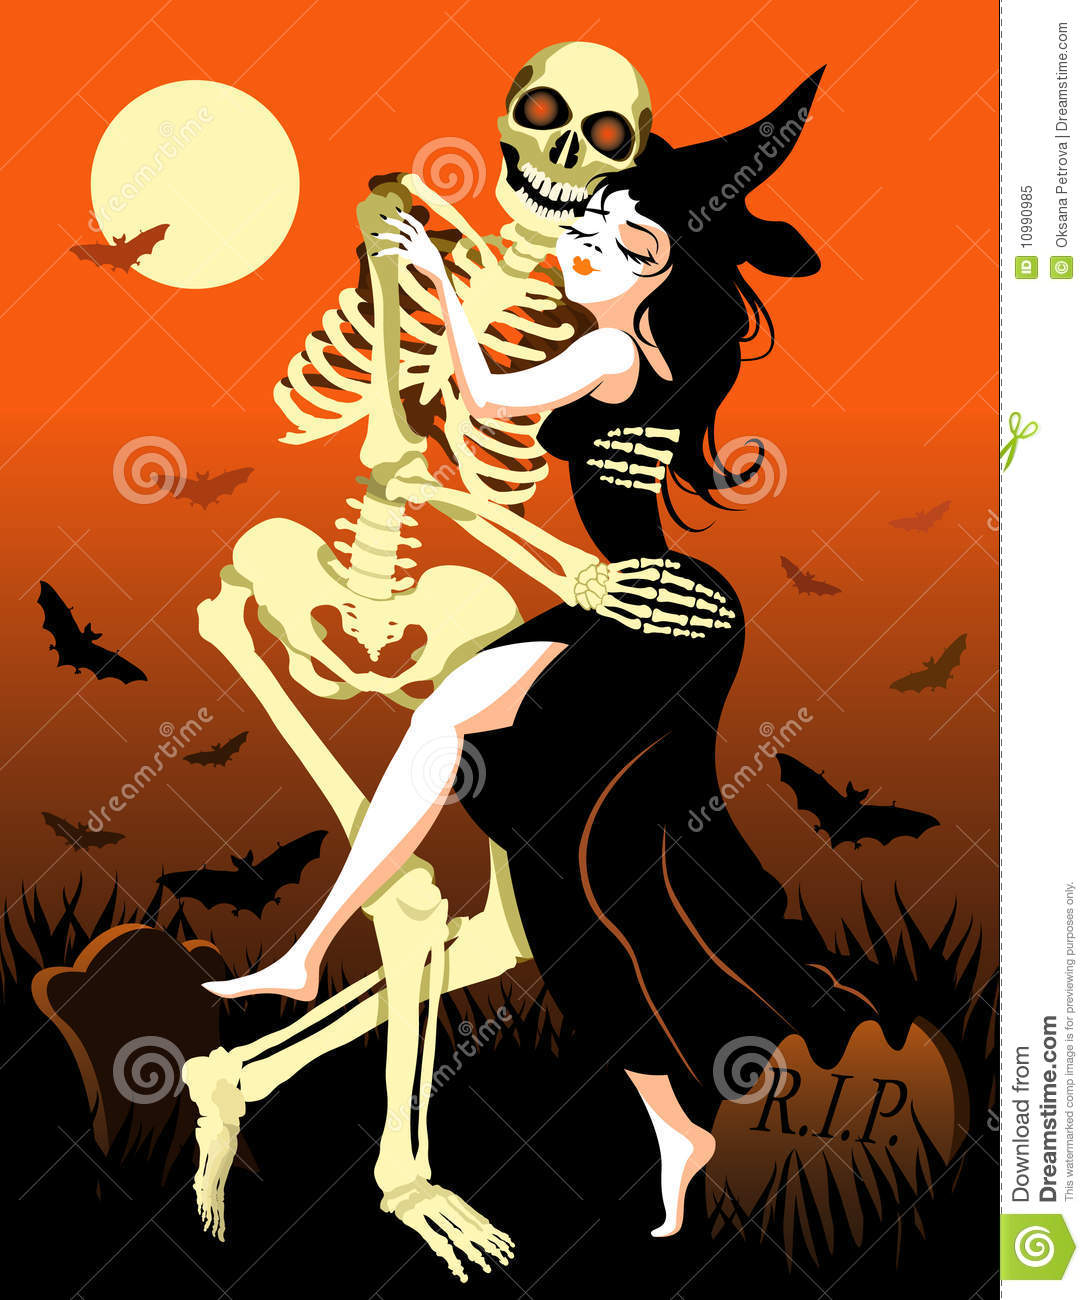 Halloween Dance Royalty Free Stock Photo - Image: 10990985